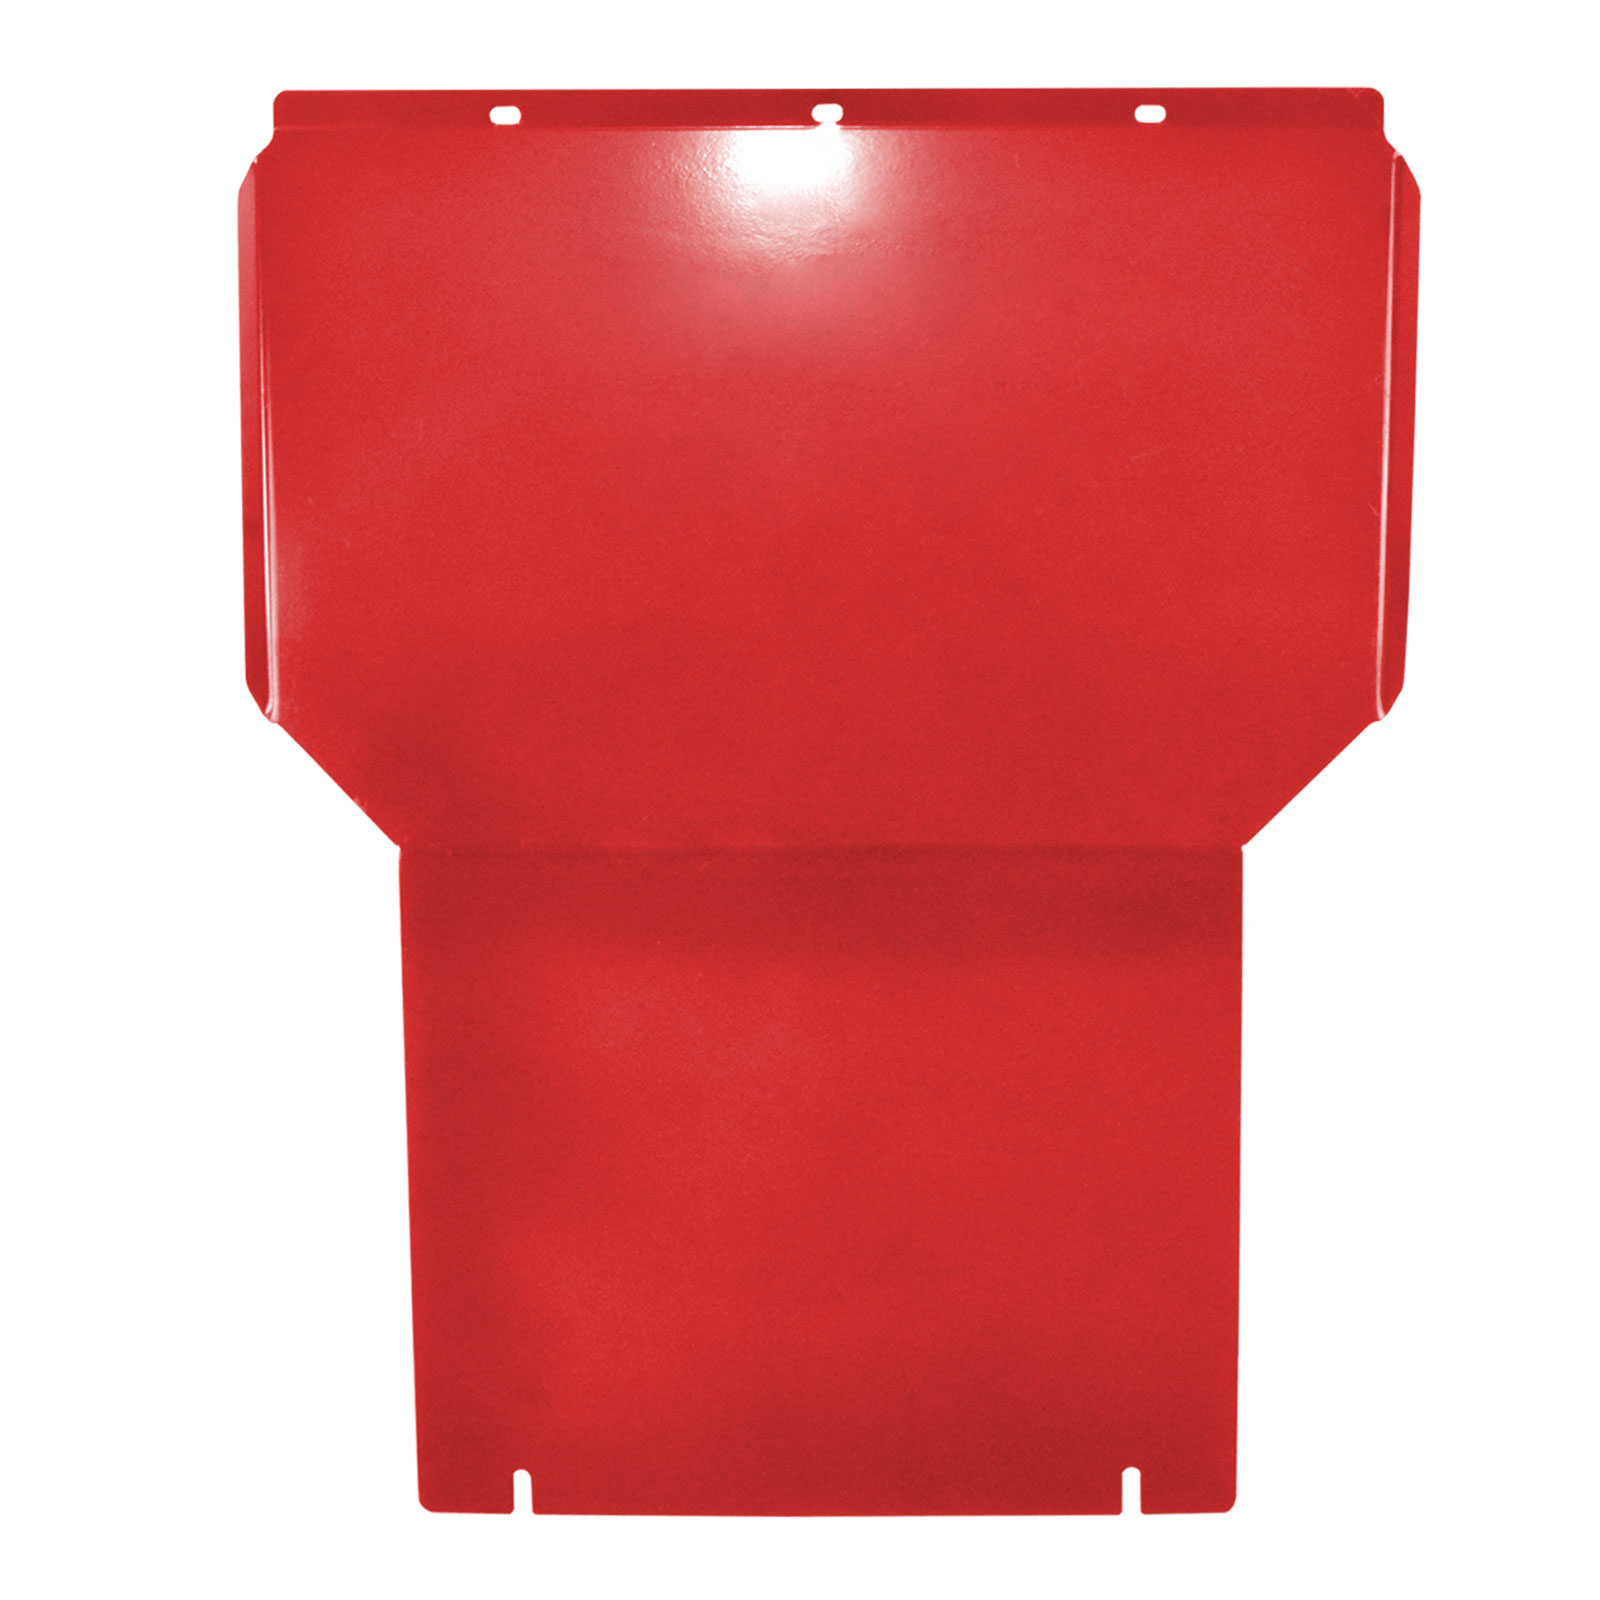 Bash Plate for Toyota Landcruiser 100 Series 1997-2007 Red image